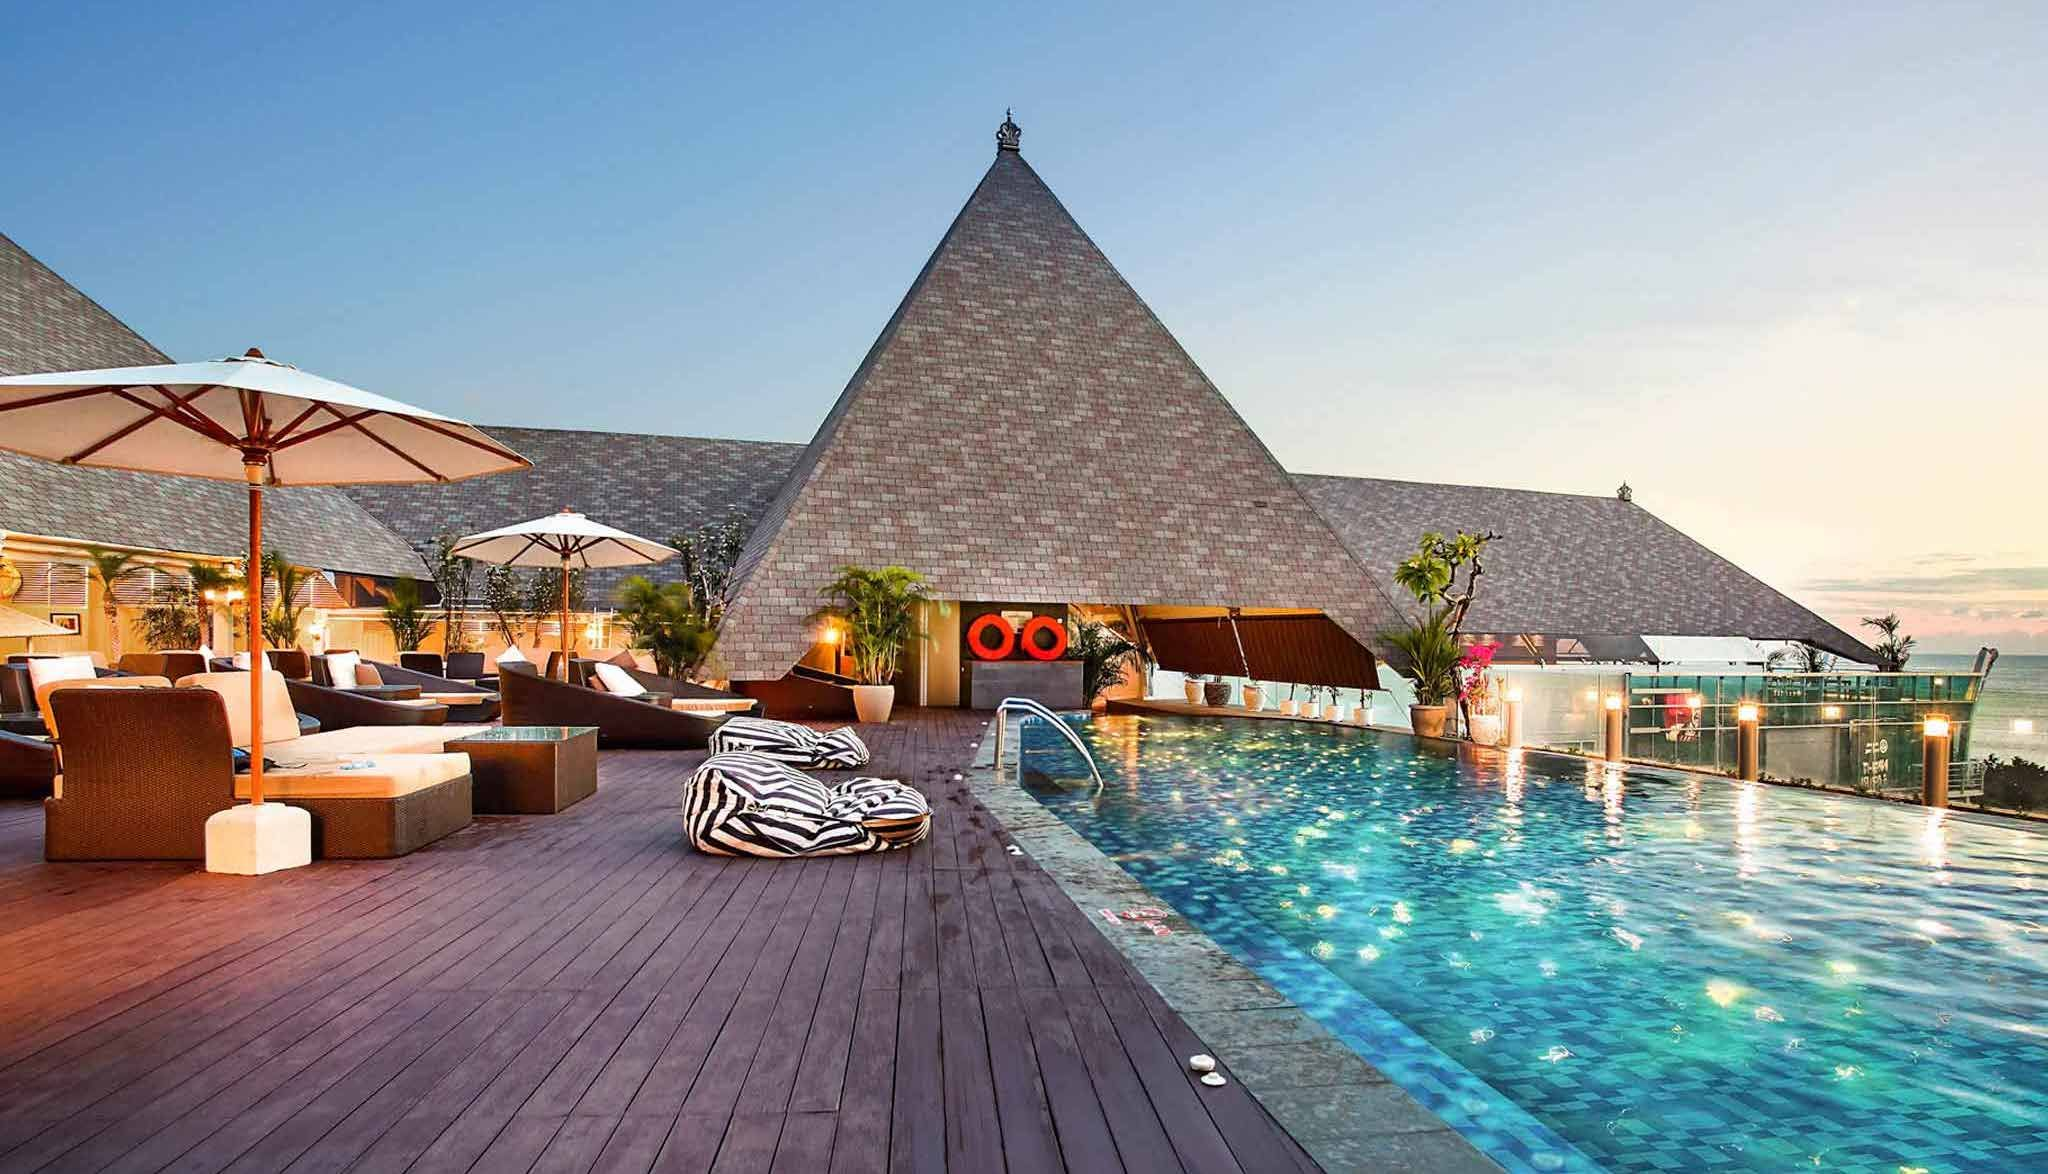 Cheap Vacation Package Deals 2021 22 Travelpirates Kuta Beach Heritage Hotel Kuta Beach Heritage Hotel